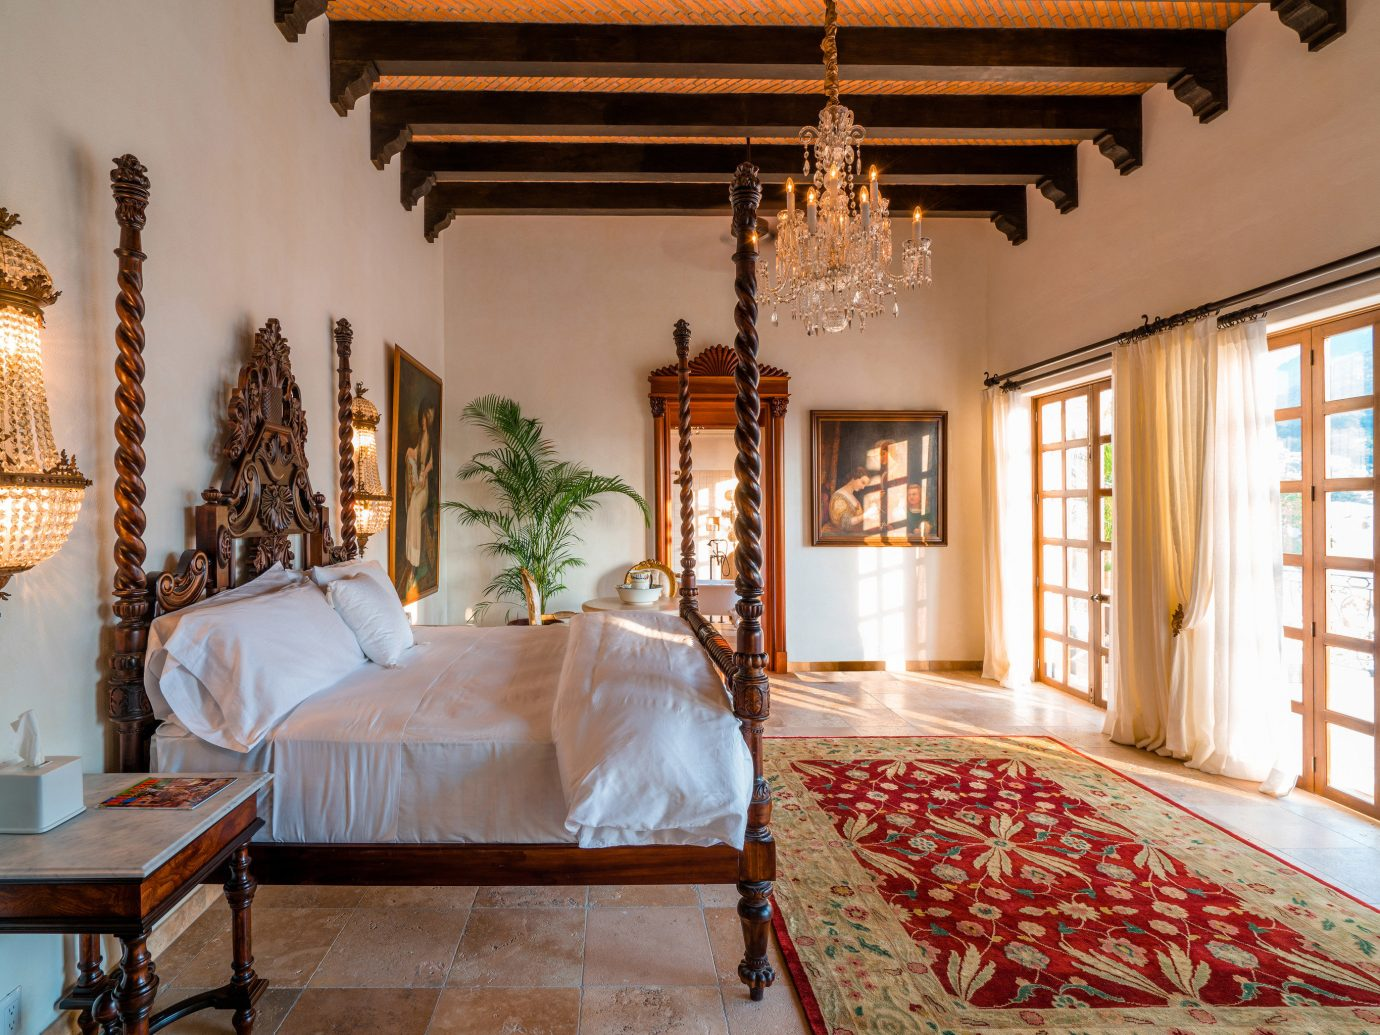 Hotels Romance indoor floor wall room property bed estate house window home living room interior design mansion cottage Villa farmhouse Bedroom real estate decorated